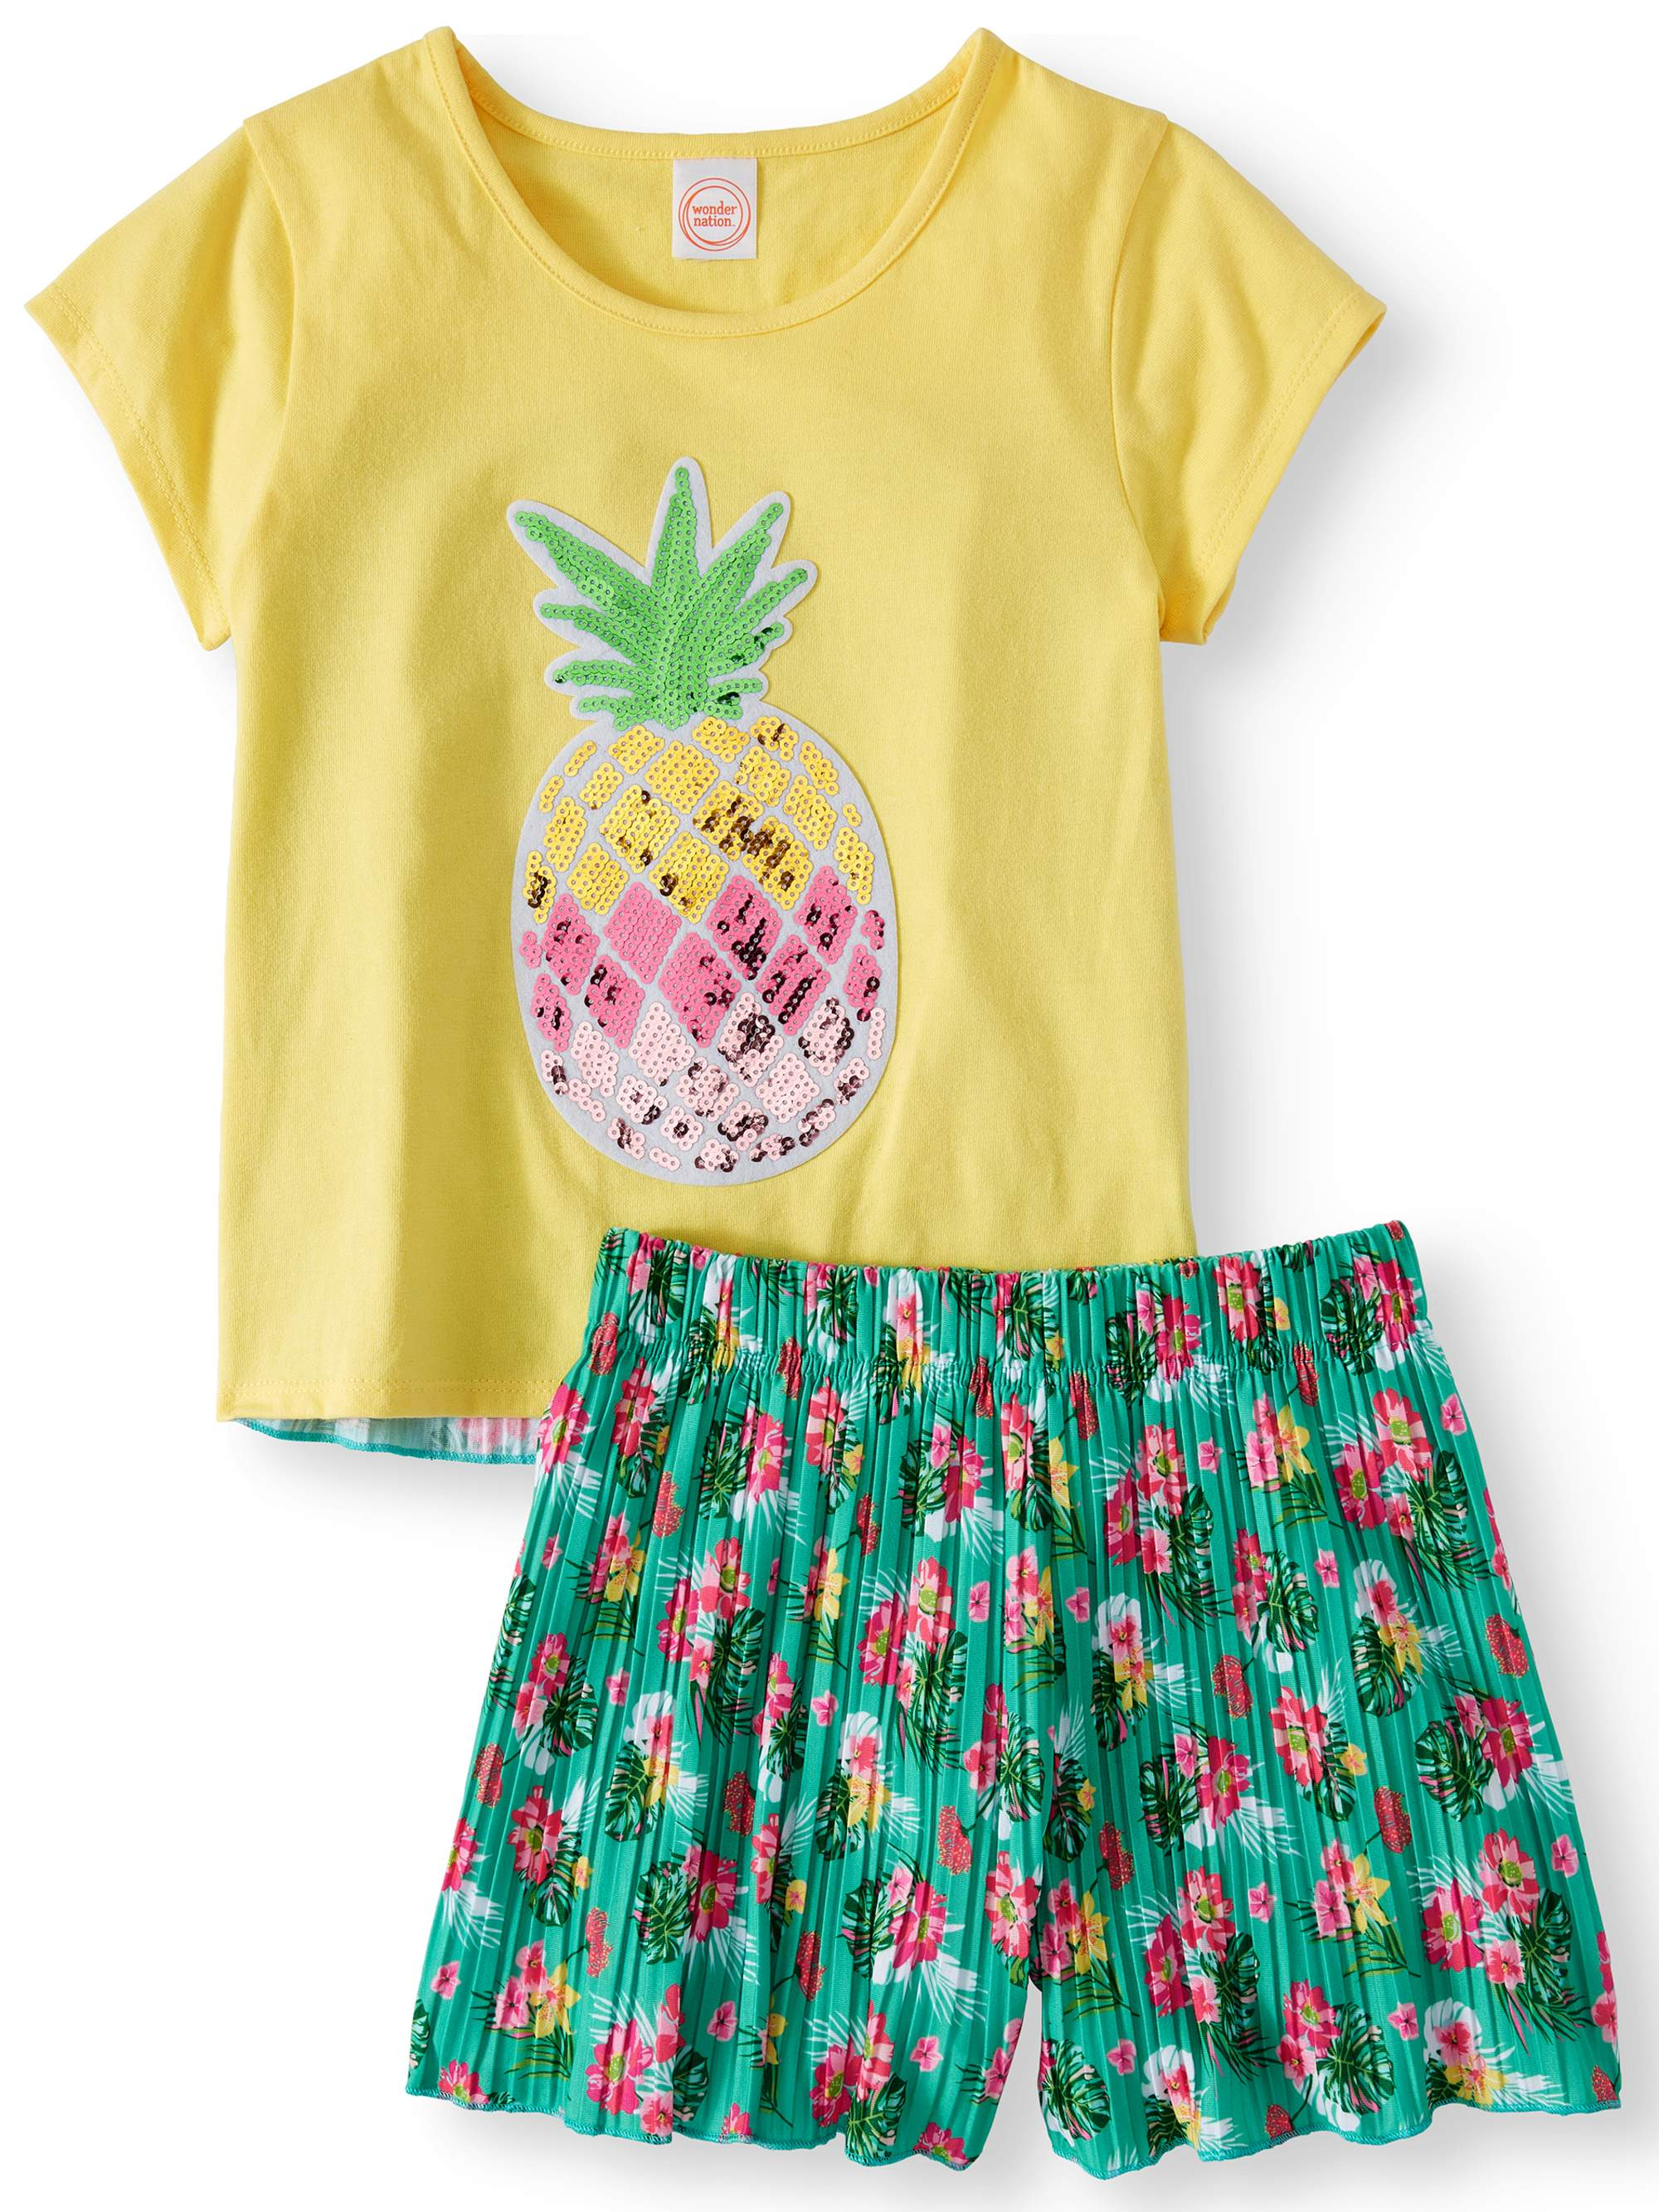 Girls' Tropical Fruit Tee and Pleated Short, 2-Piece Outfit Set